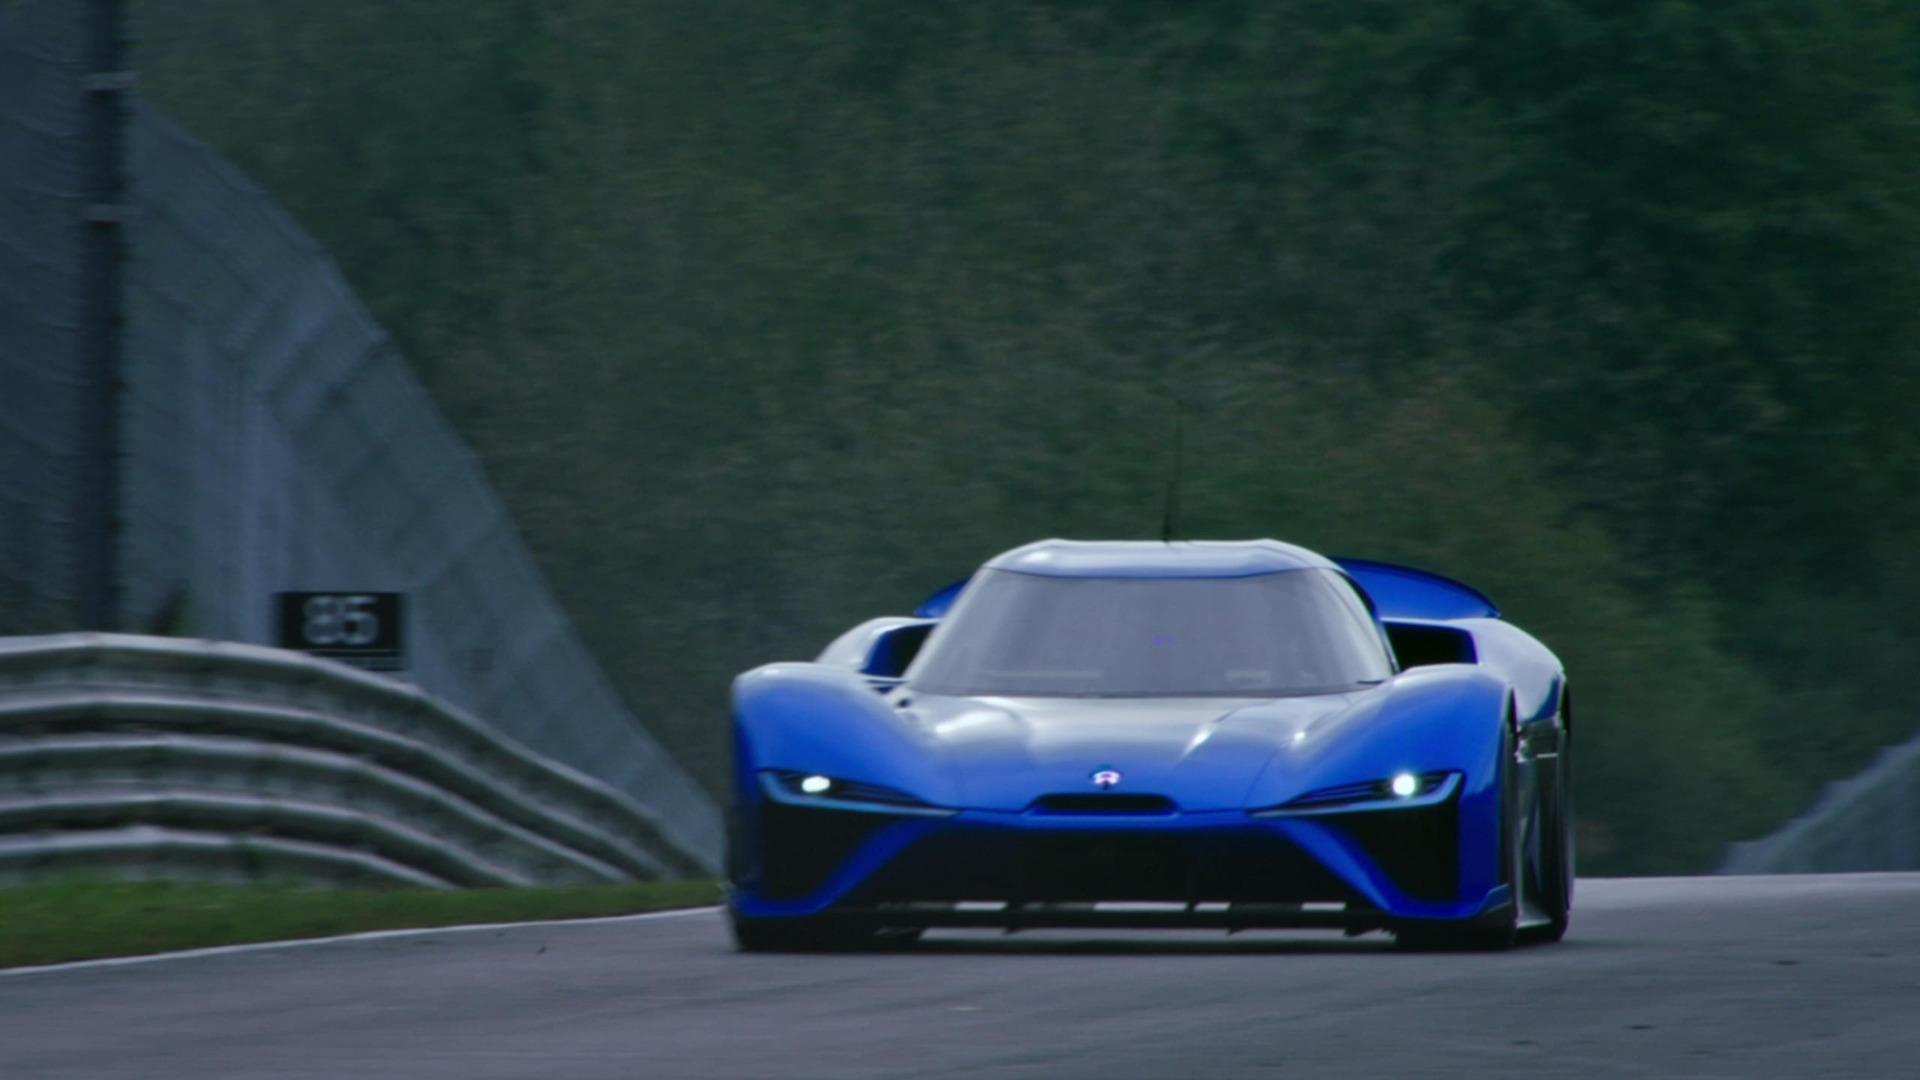 nextev nio ep9 unveiled 1 341 hp 0 200 km h in 7 1 seconds 3g cornering claims fastest ev. Black Bedroom Furniture Sets. Home Design Ideas